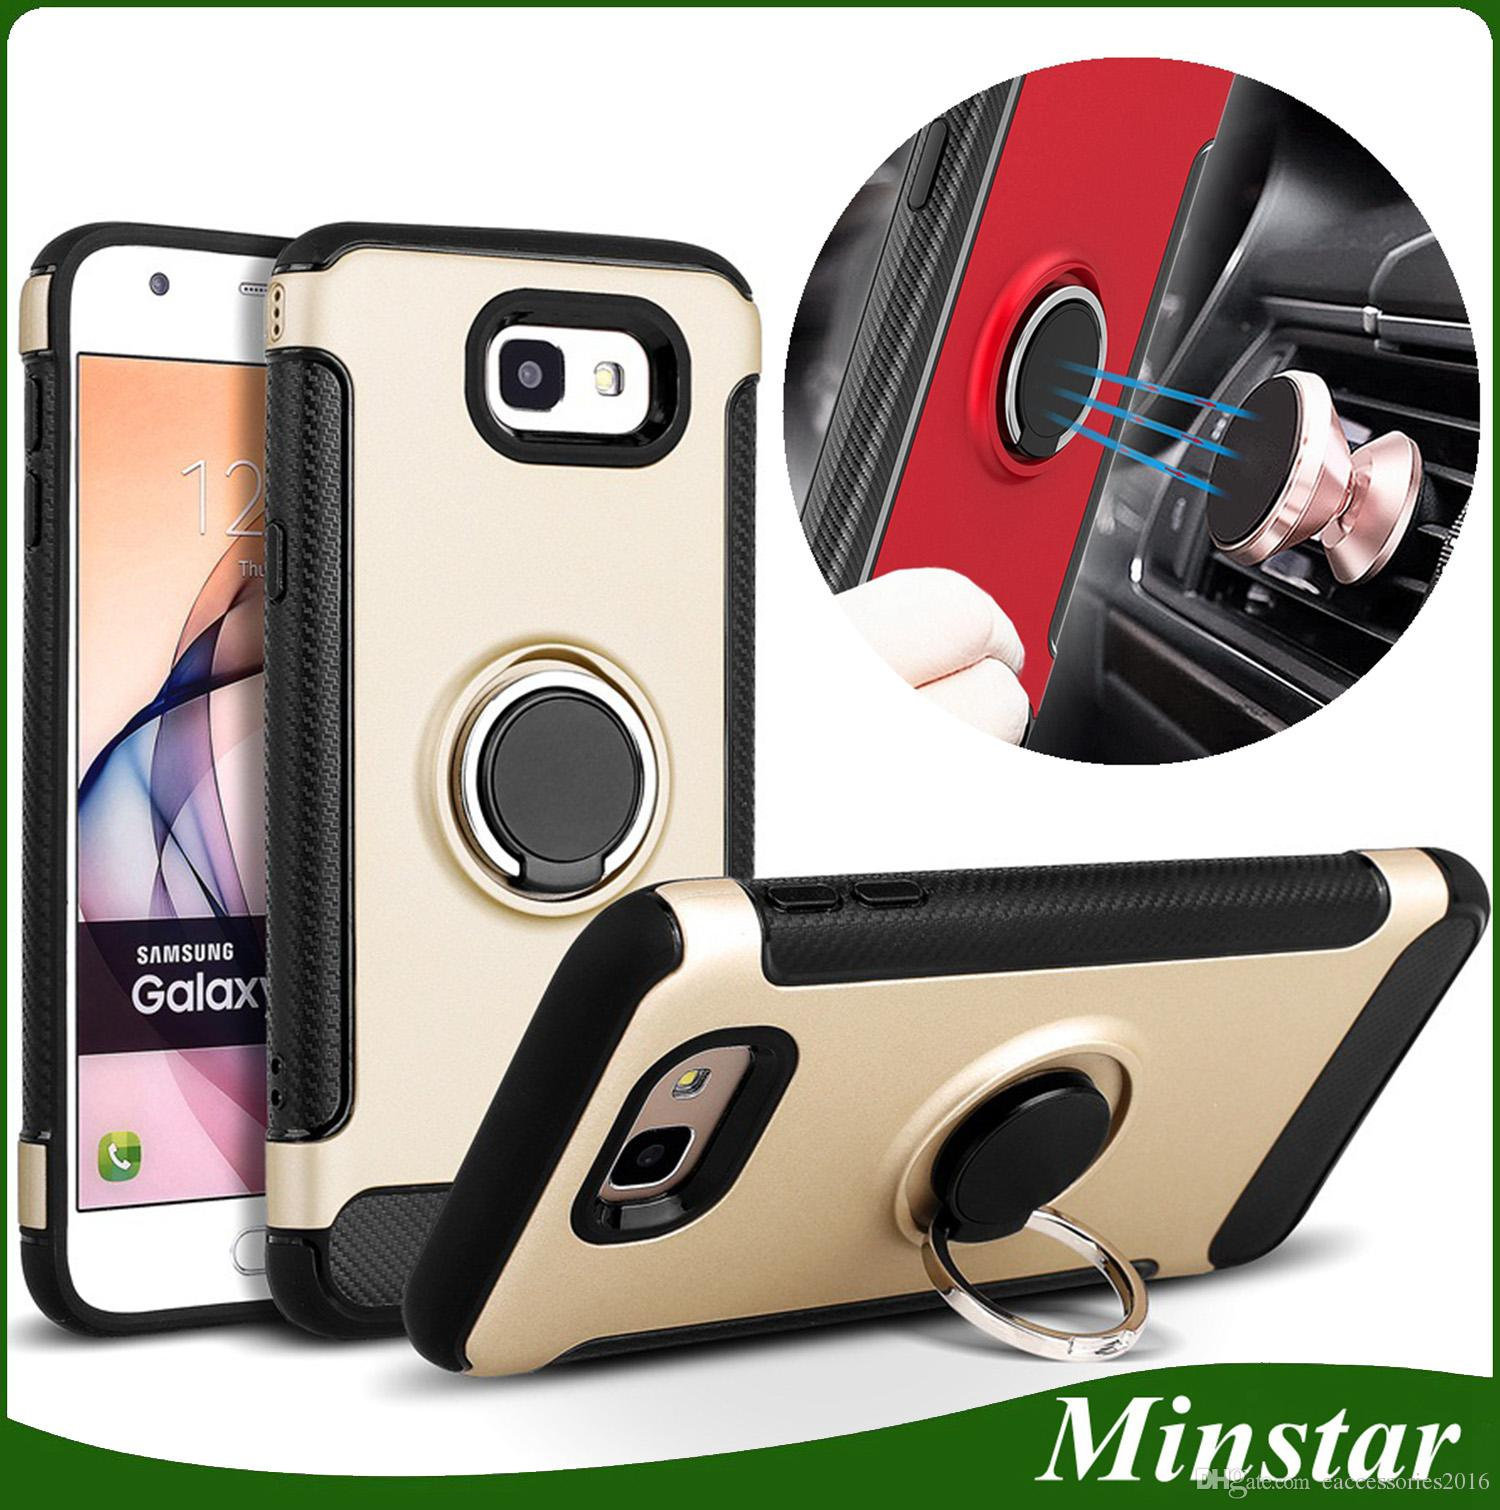 For Samsung J7 2017 J7 Prime J3 Prime J5 2017 J3 2016 J7 Max 360degree Rotating Ring Kickstand Case Magnetic Stand Flexible Cover Personalized Cell Phone